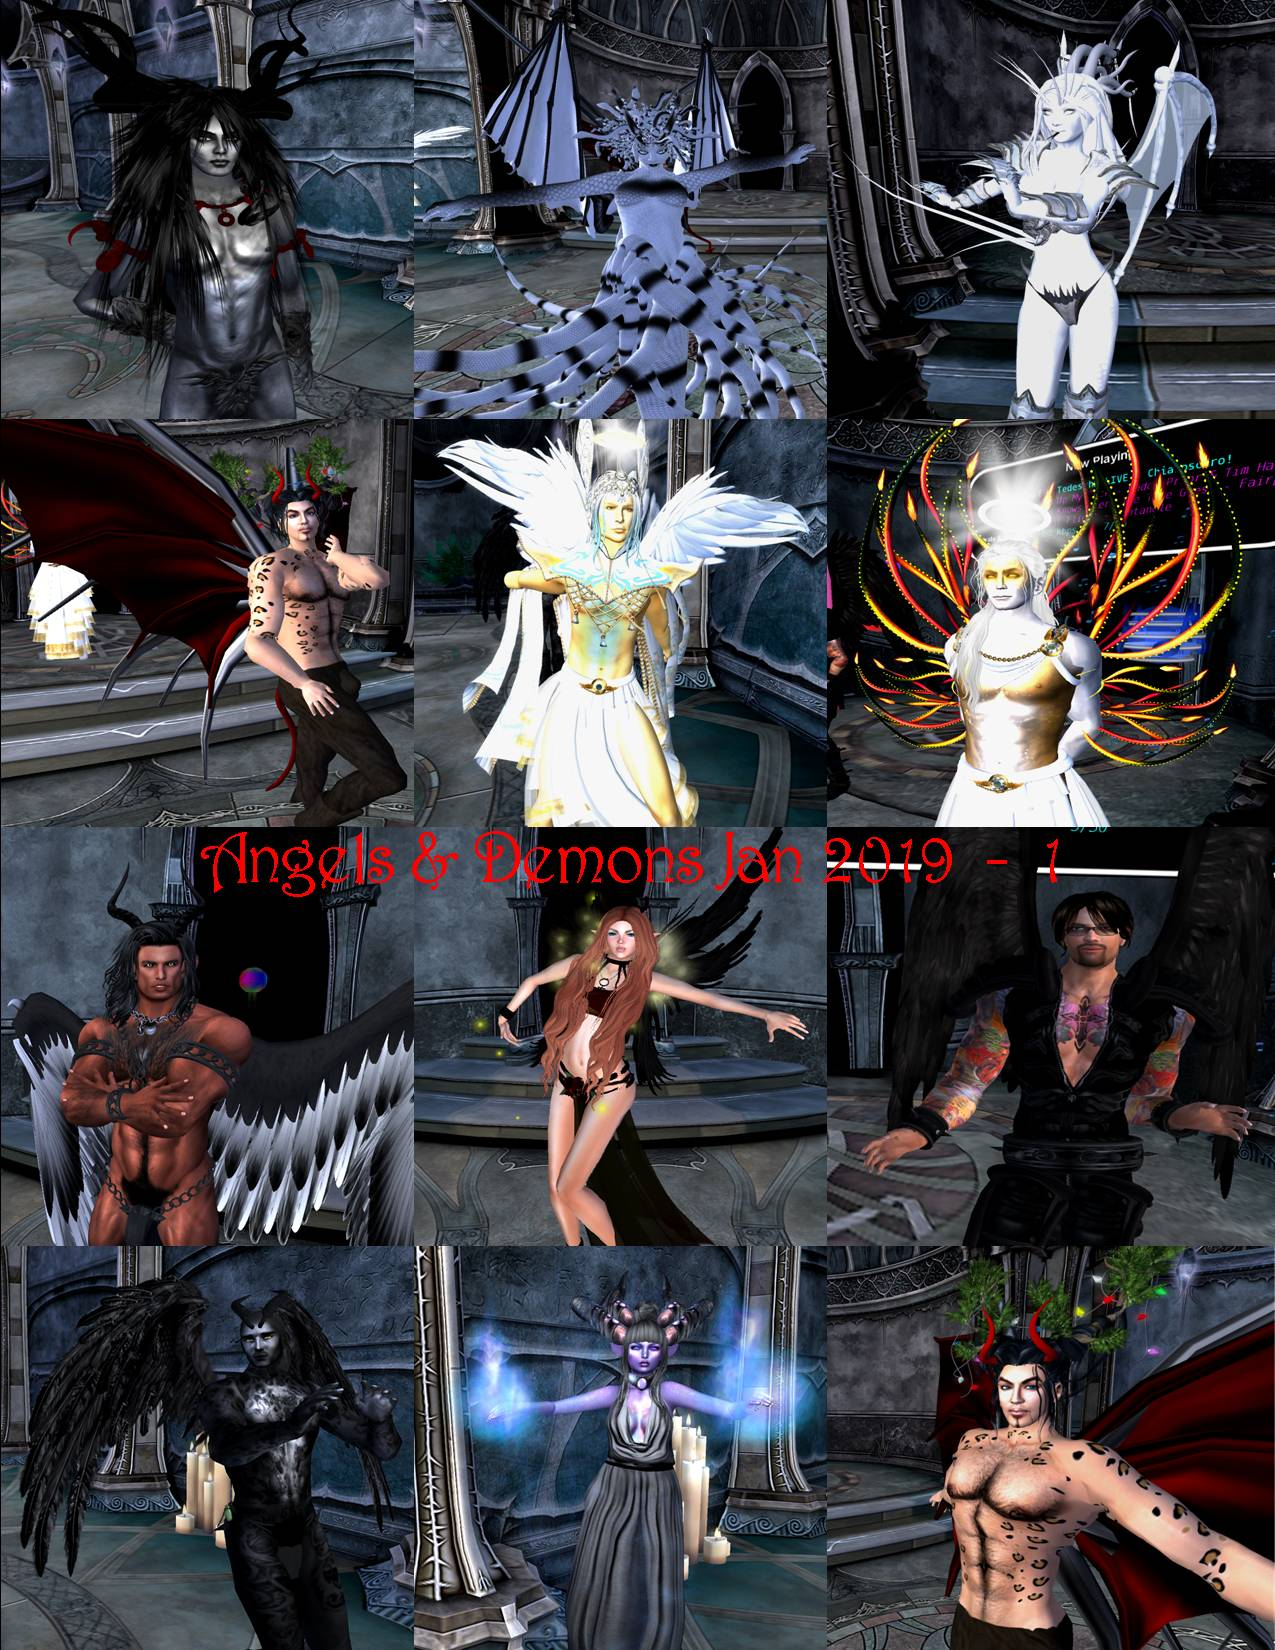 angels & demons party collage jan 2019 1